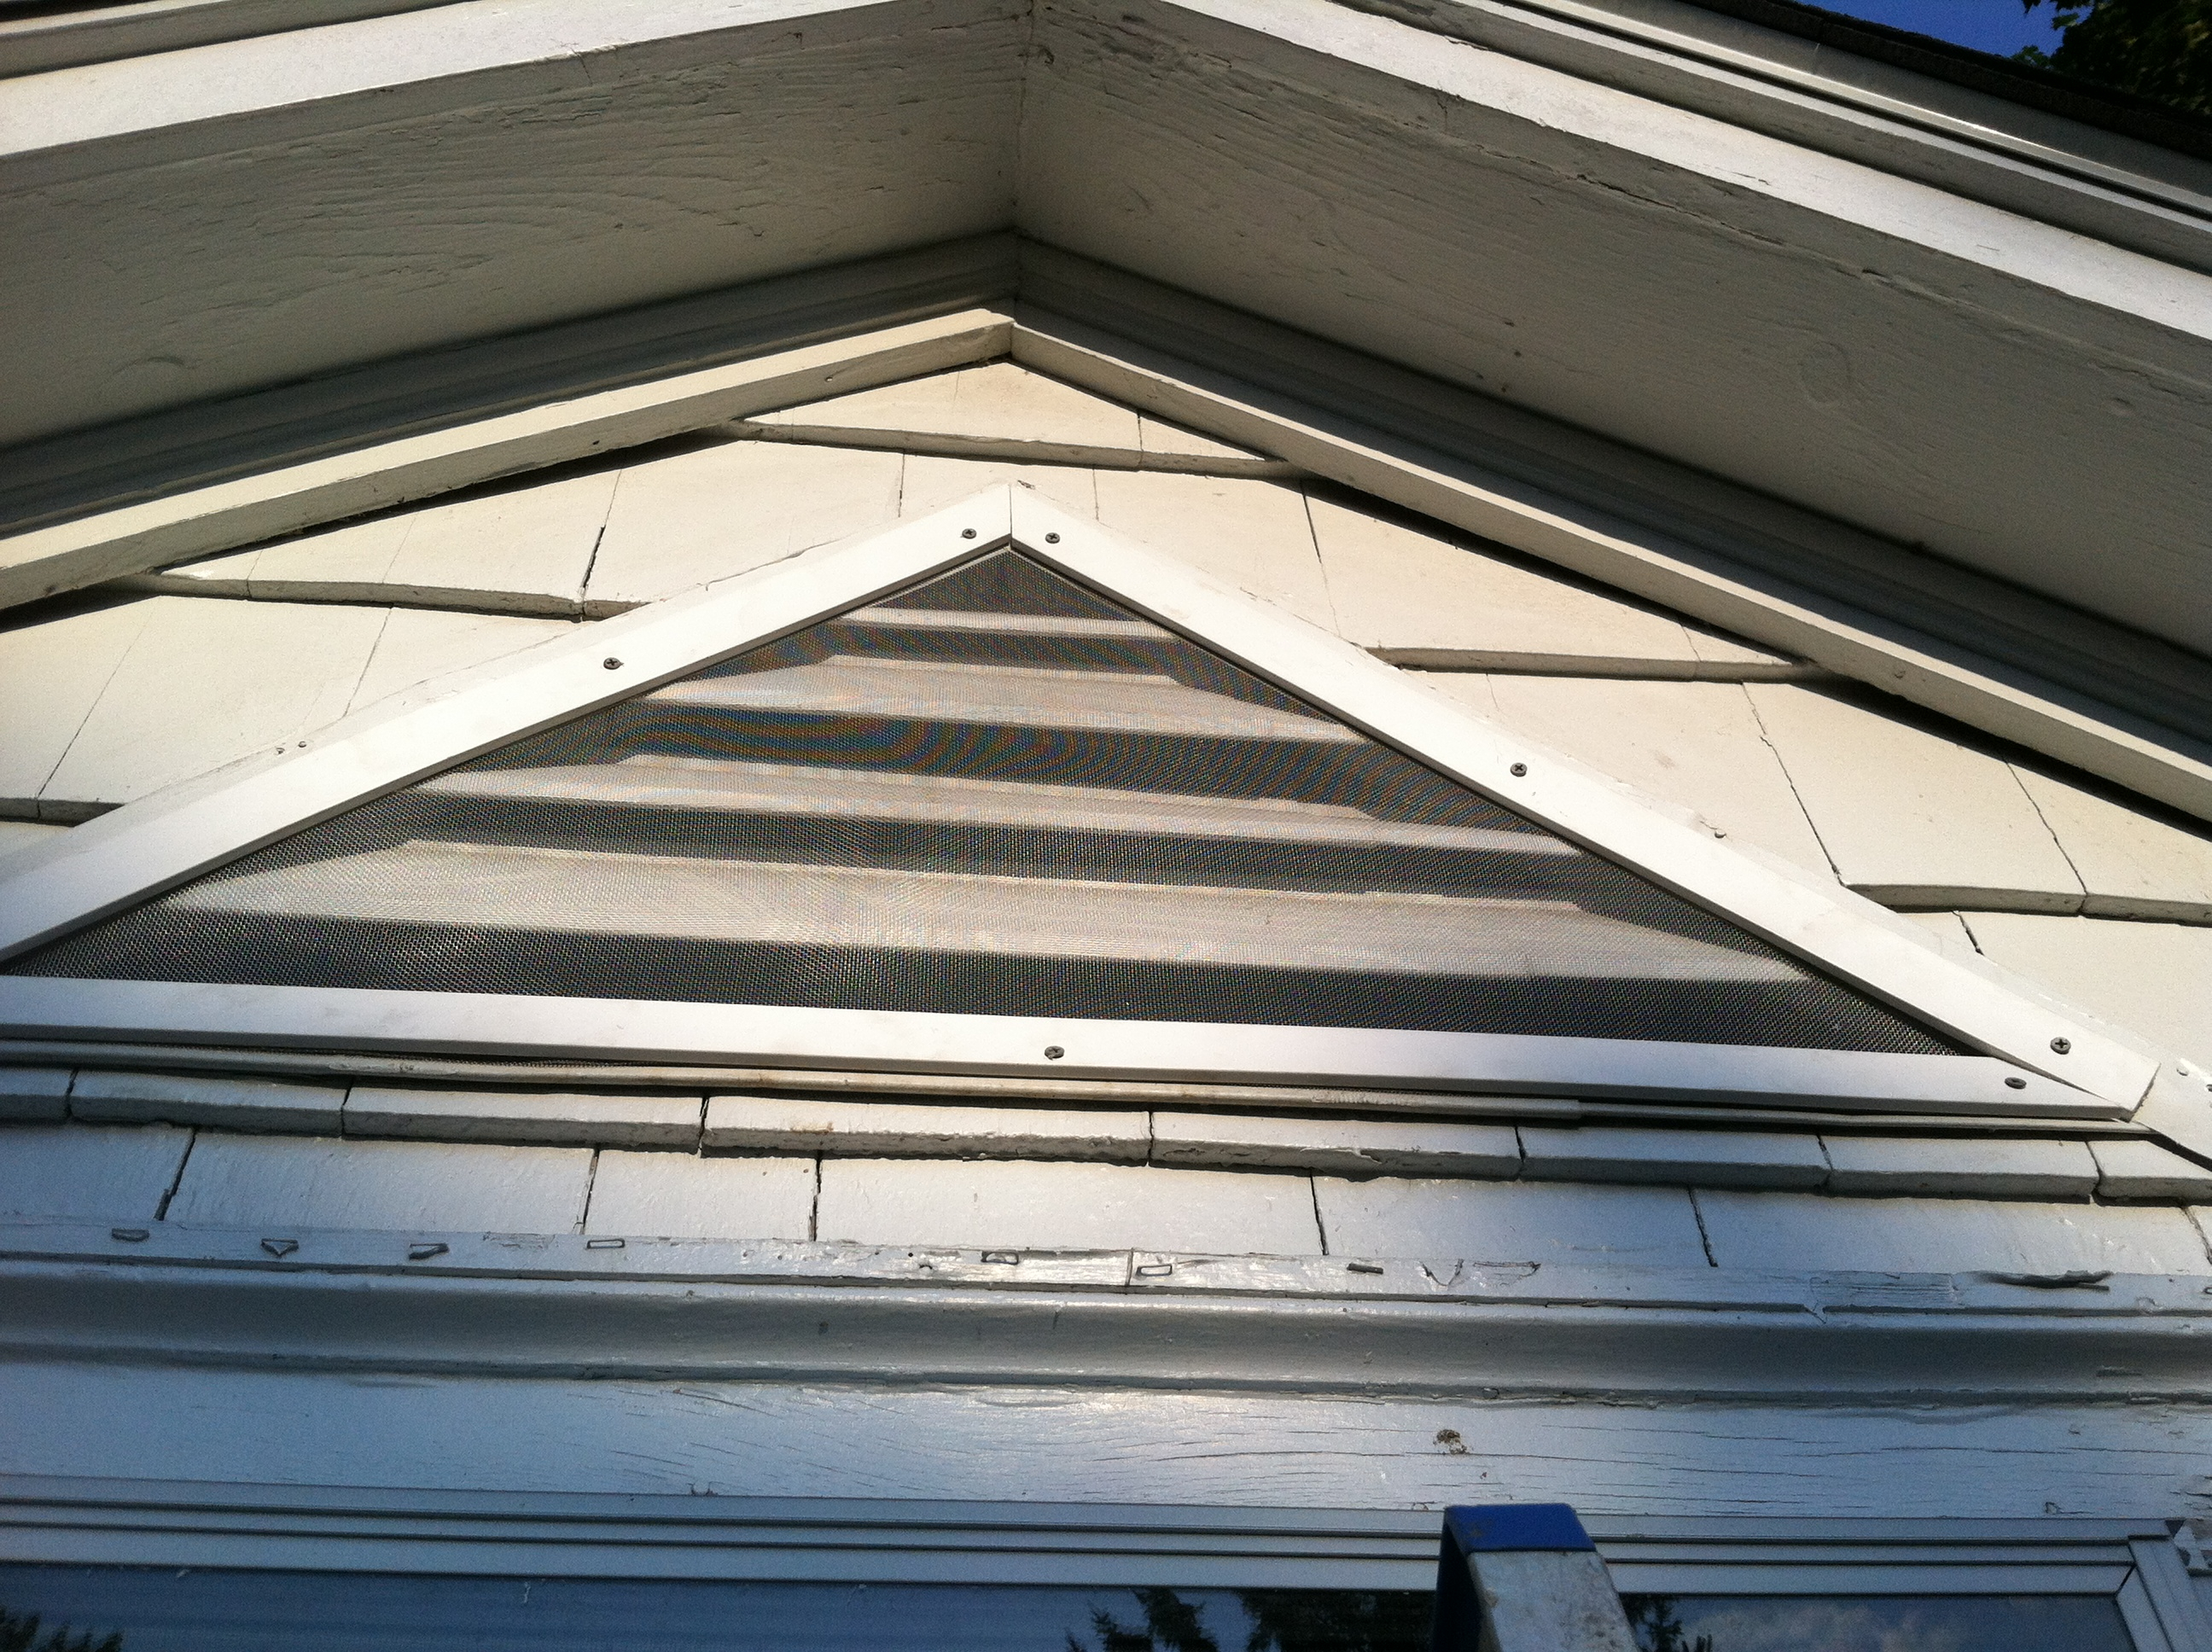 Architecture Awesome Gable Vents In Wall Design With Sloping Roof intended for sizing 2592 X 1936